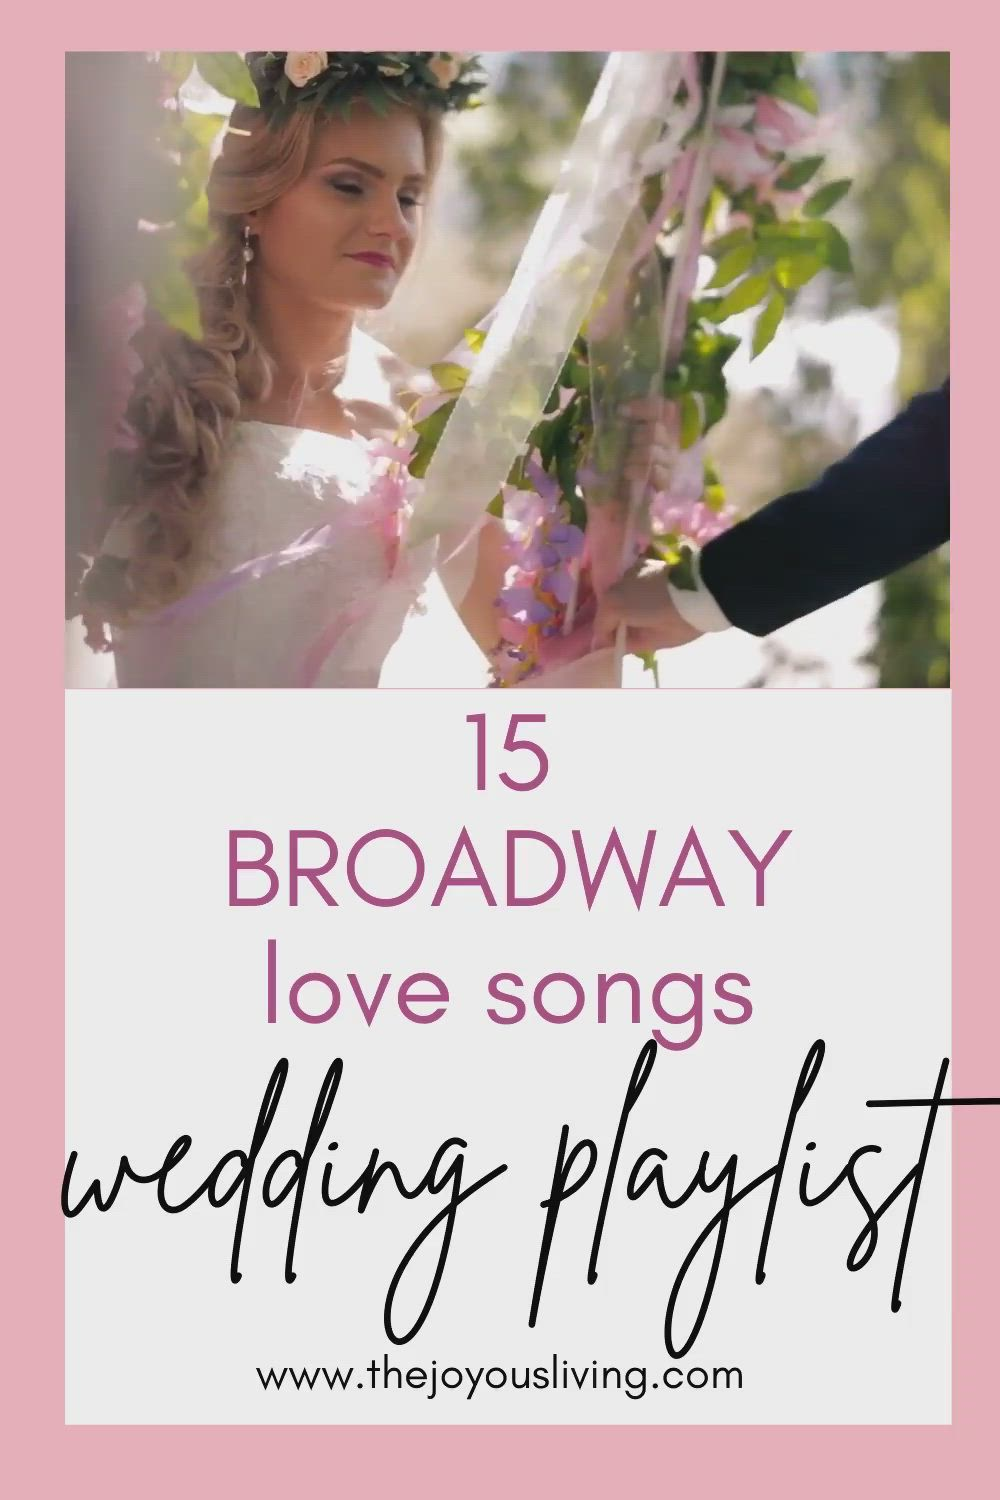 Wedding Playlist 15 Charming Broadway Songs For Your Wedding Playlist Video Broadway Songs Best Love Songs Love Songs Playlist